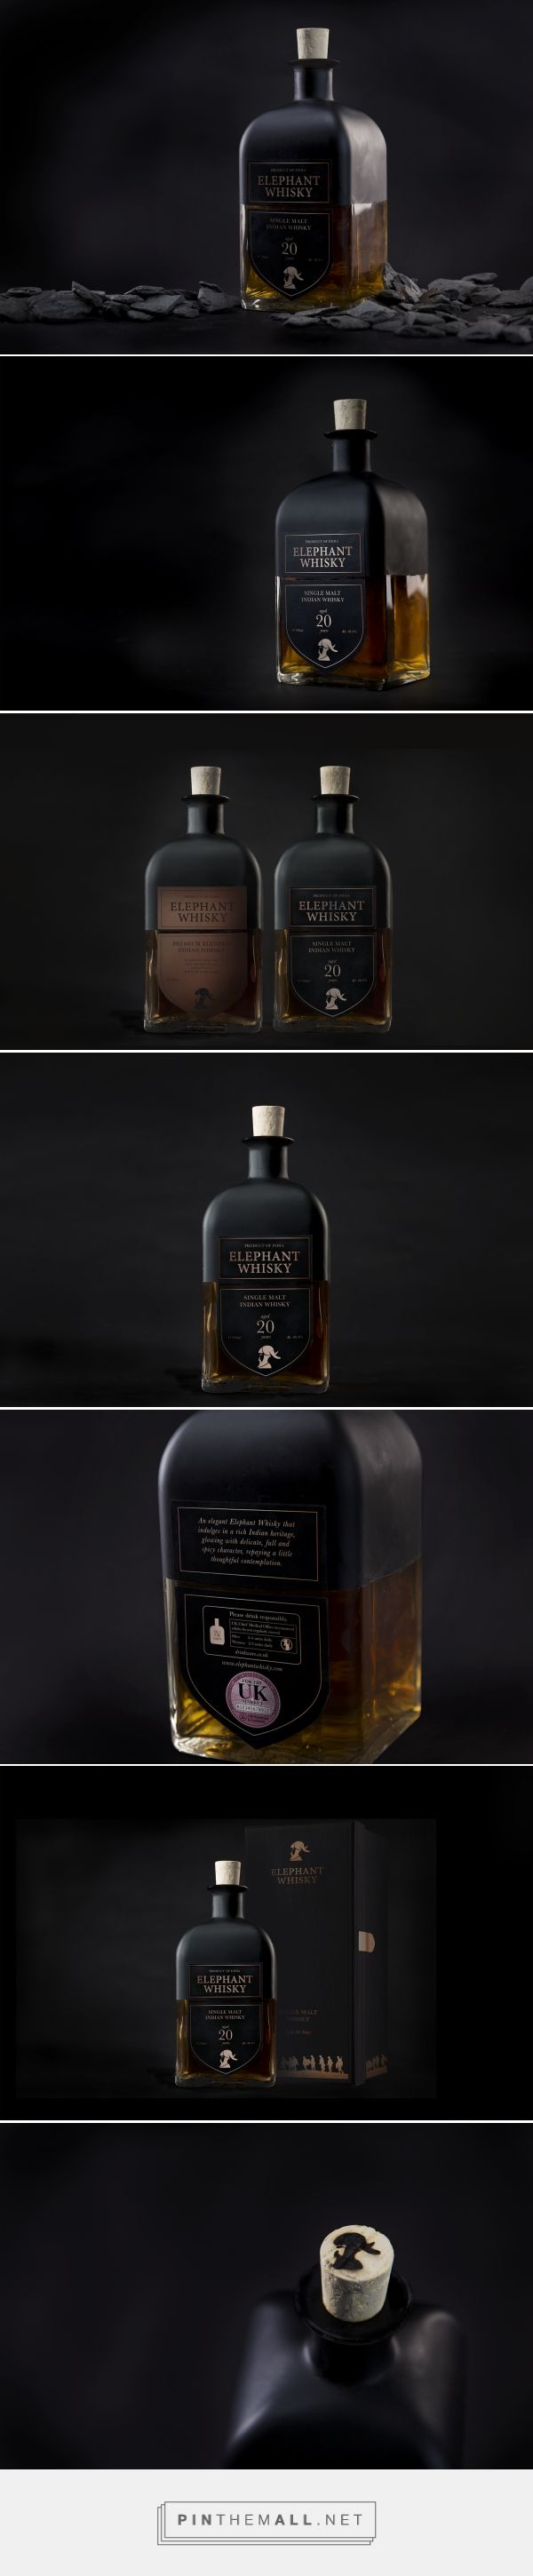 Elephant Whisky student packaging design concept by Evelyn Chee - http://www.packagingoftheworld.com/2018/01/inspire-to-strive-elephant-whisky.html